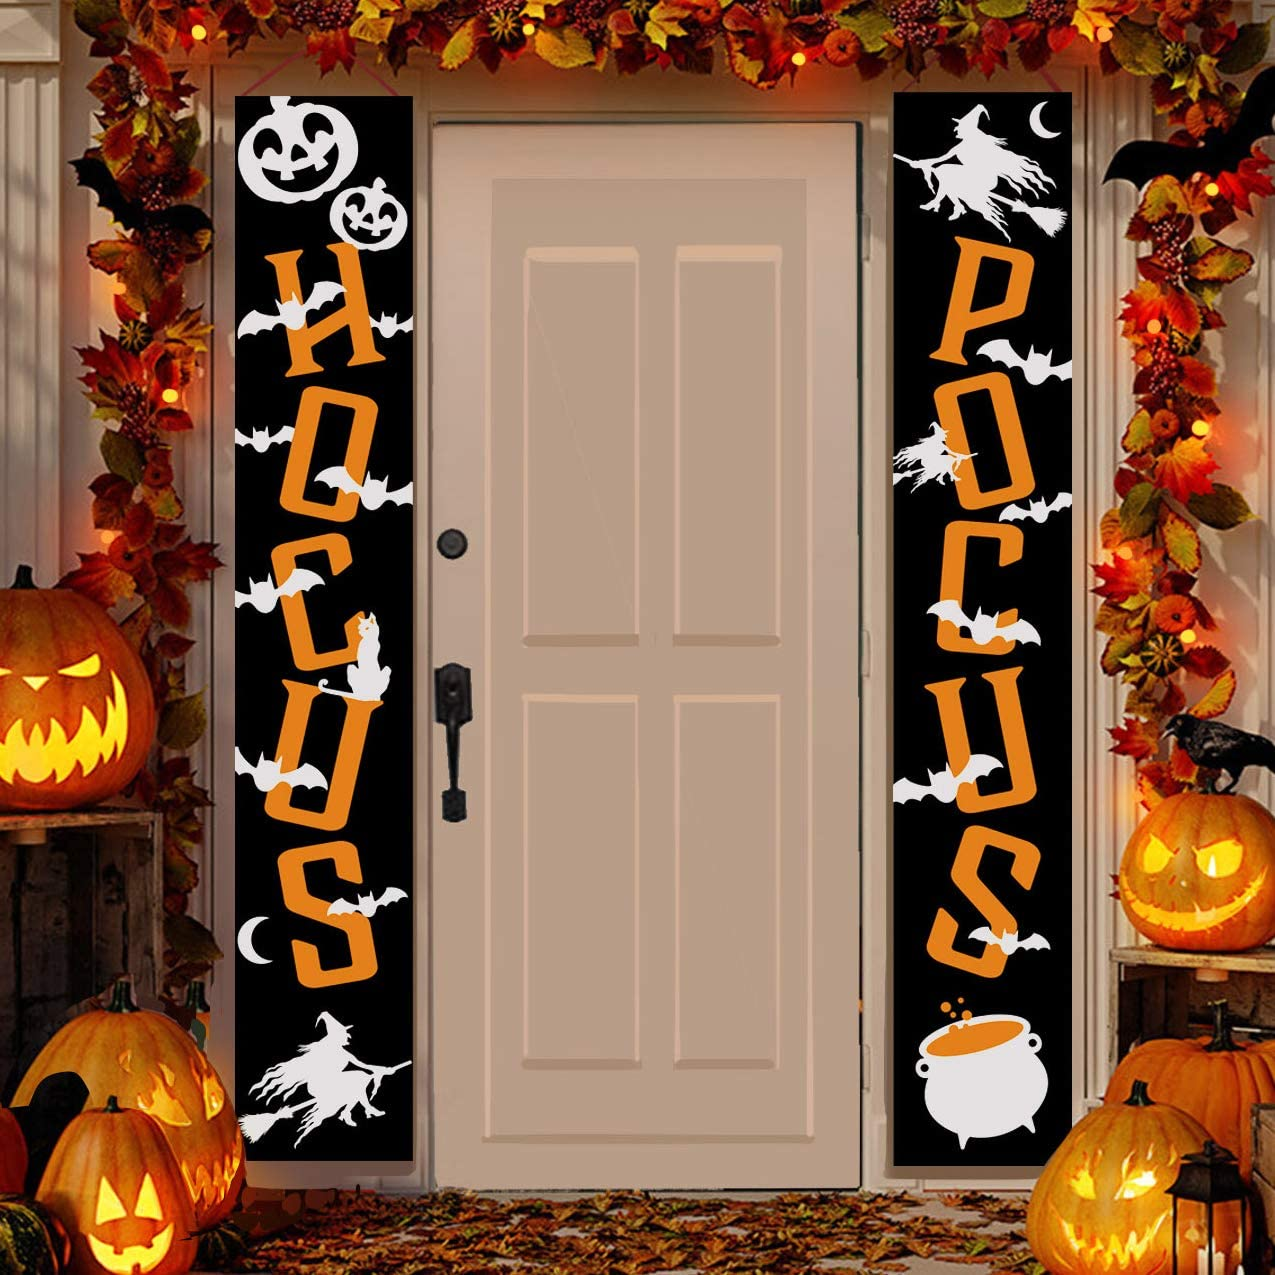 """JOYIN Halloween Hocus Pocus Banner Hanging Porch Sign 72"""" Decorative for Home Offer Creepy Themed Party Indoor Outdoor Trick or Treat Decor"""